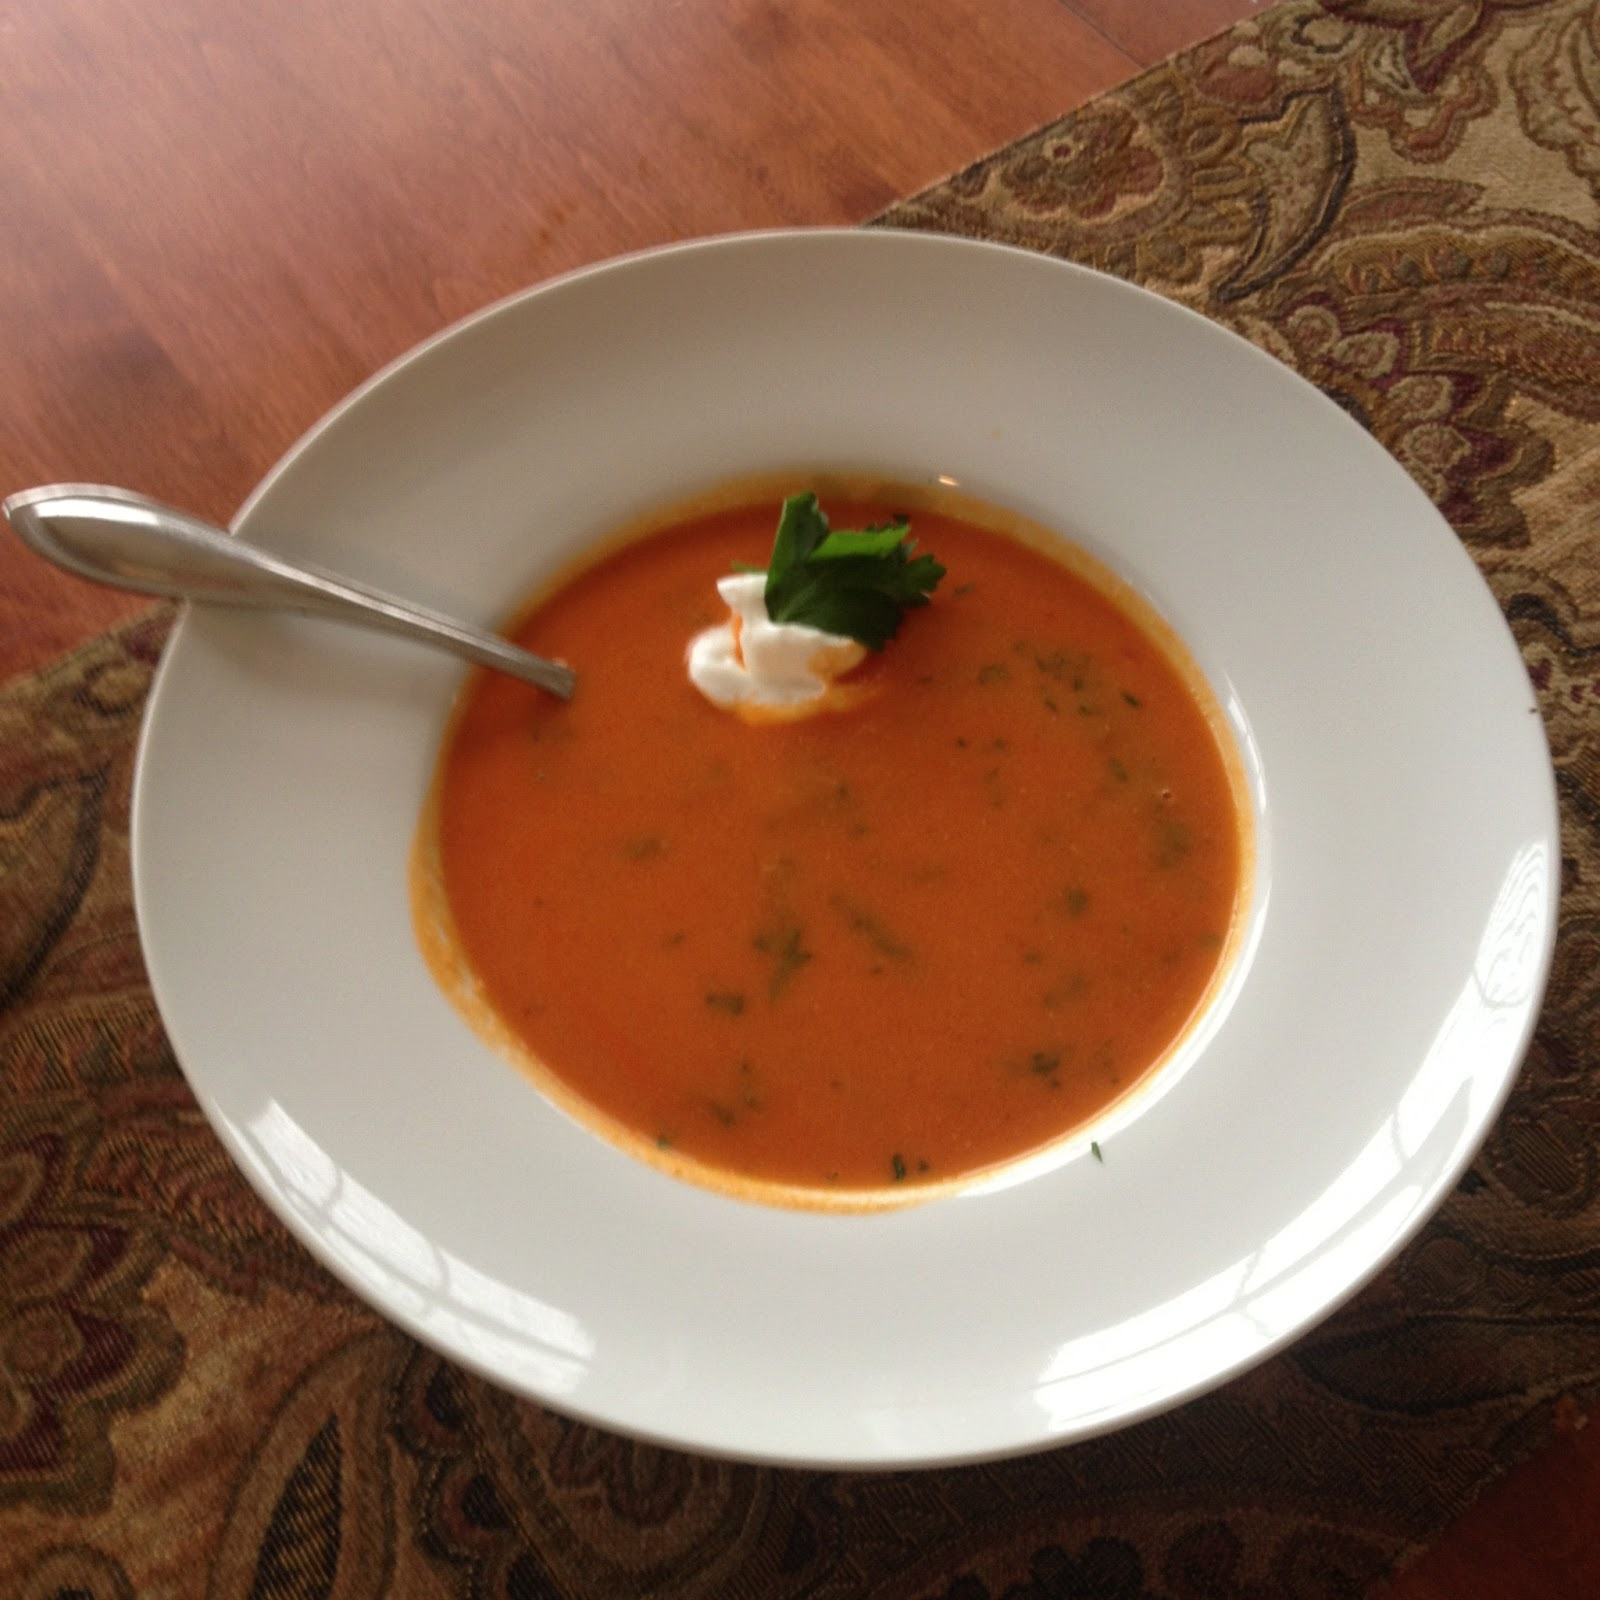 Food Chirps: Spiced Chickpea and Tomato Soup with Roasted Peppers